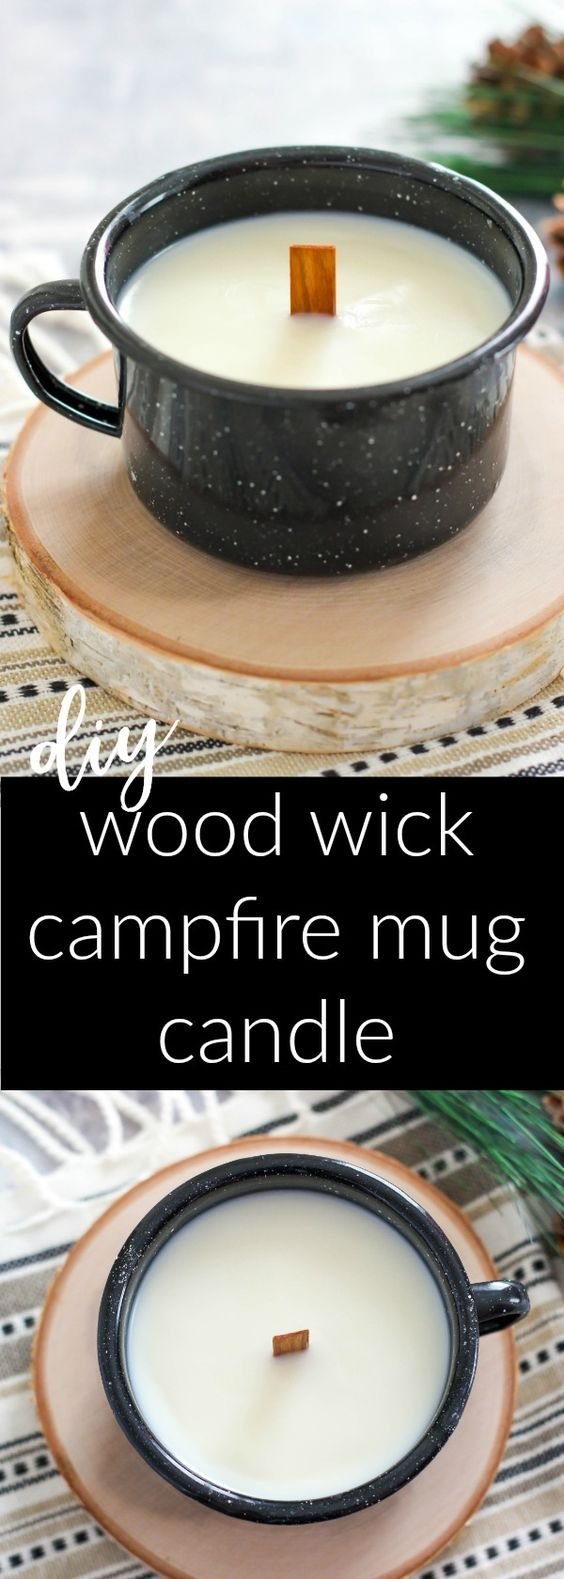 DIY Wood Wick Campfire Mug Candle Natural soy wax